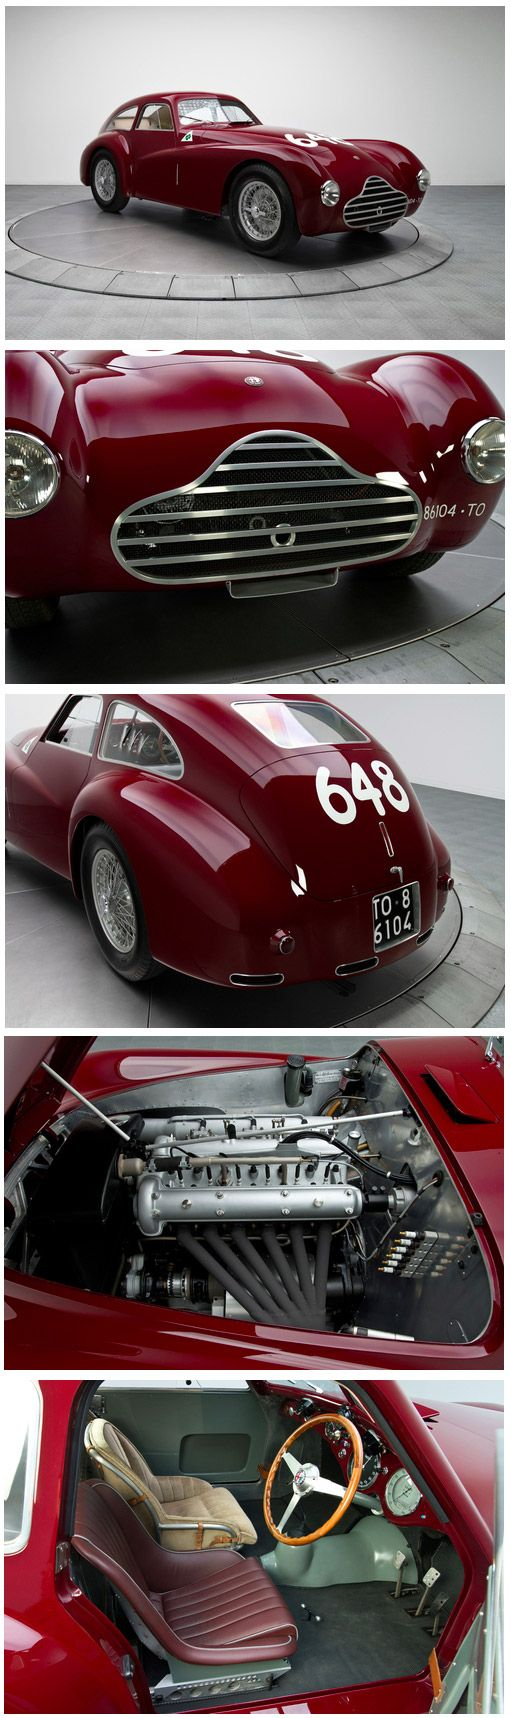 1950 .. Mille Miglia , an Alfa Romeo 6C 2500 Competizione driven by Fangio and Zanardi finished 3rd o/a.